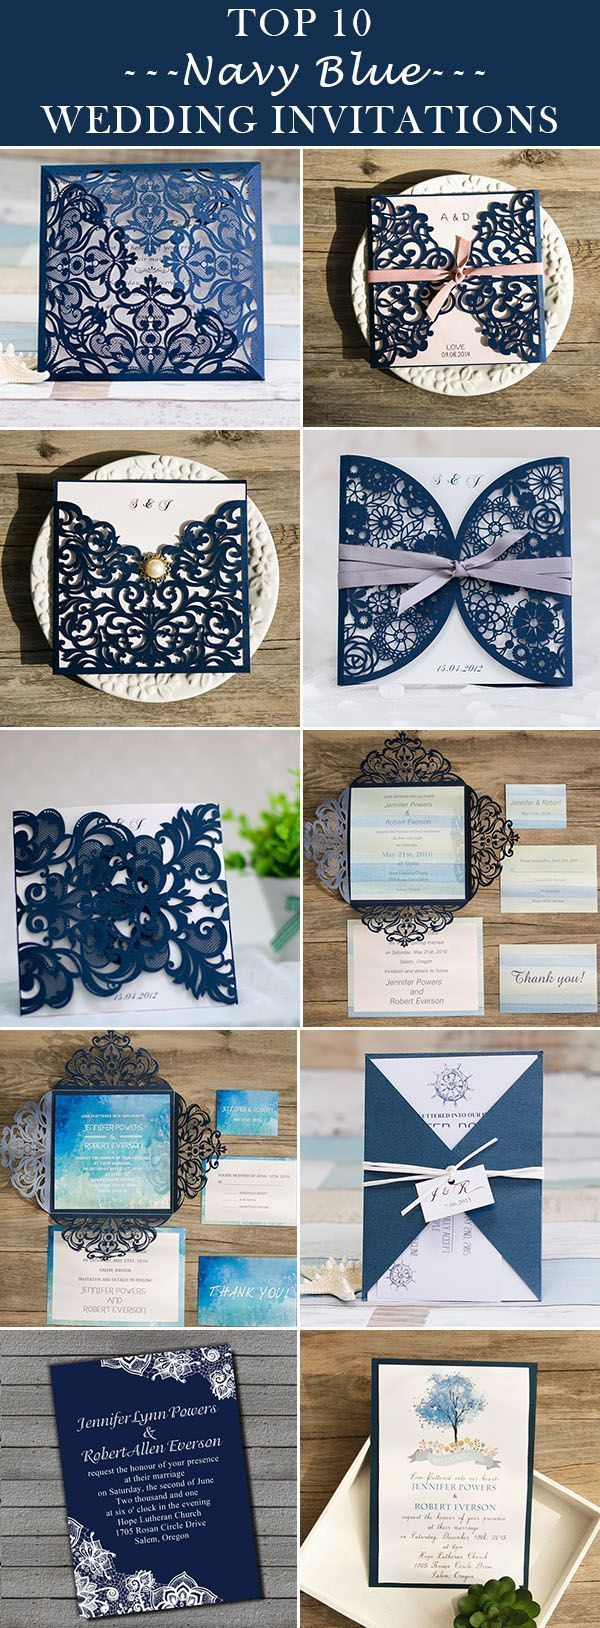 size of response cards for wedding invitations%0A Top    Trending Navy Blue Wedding Invitations for      Brides